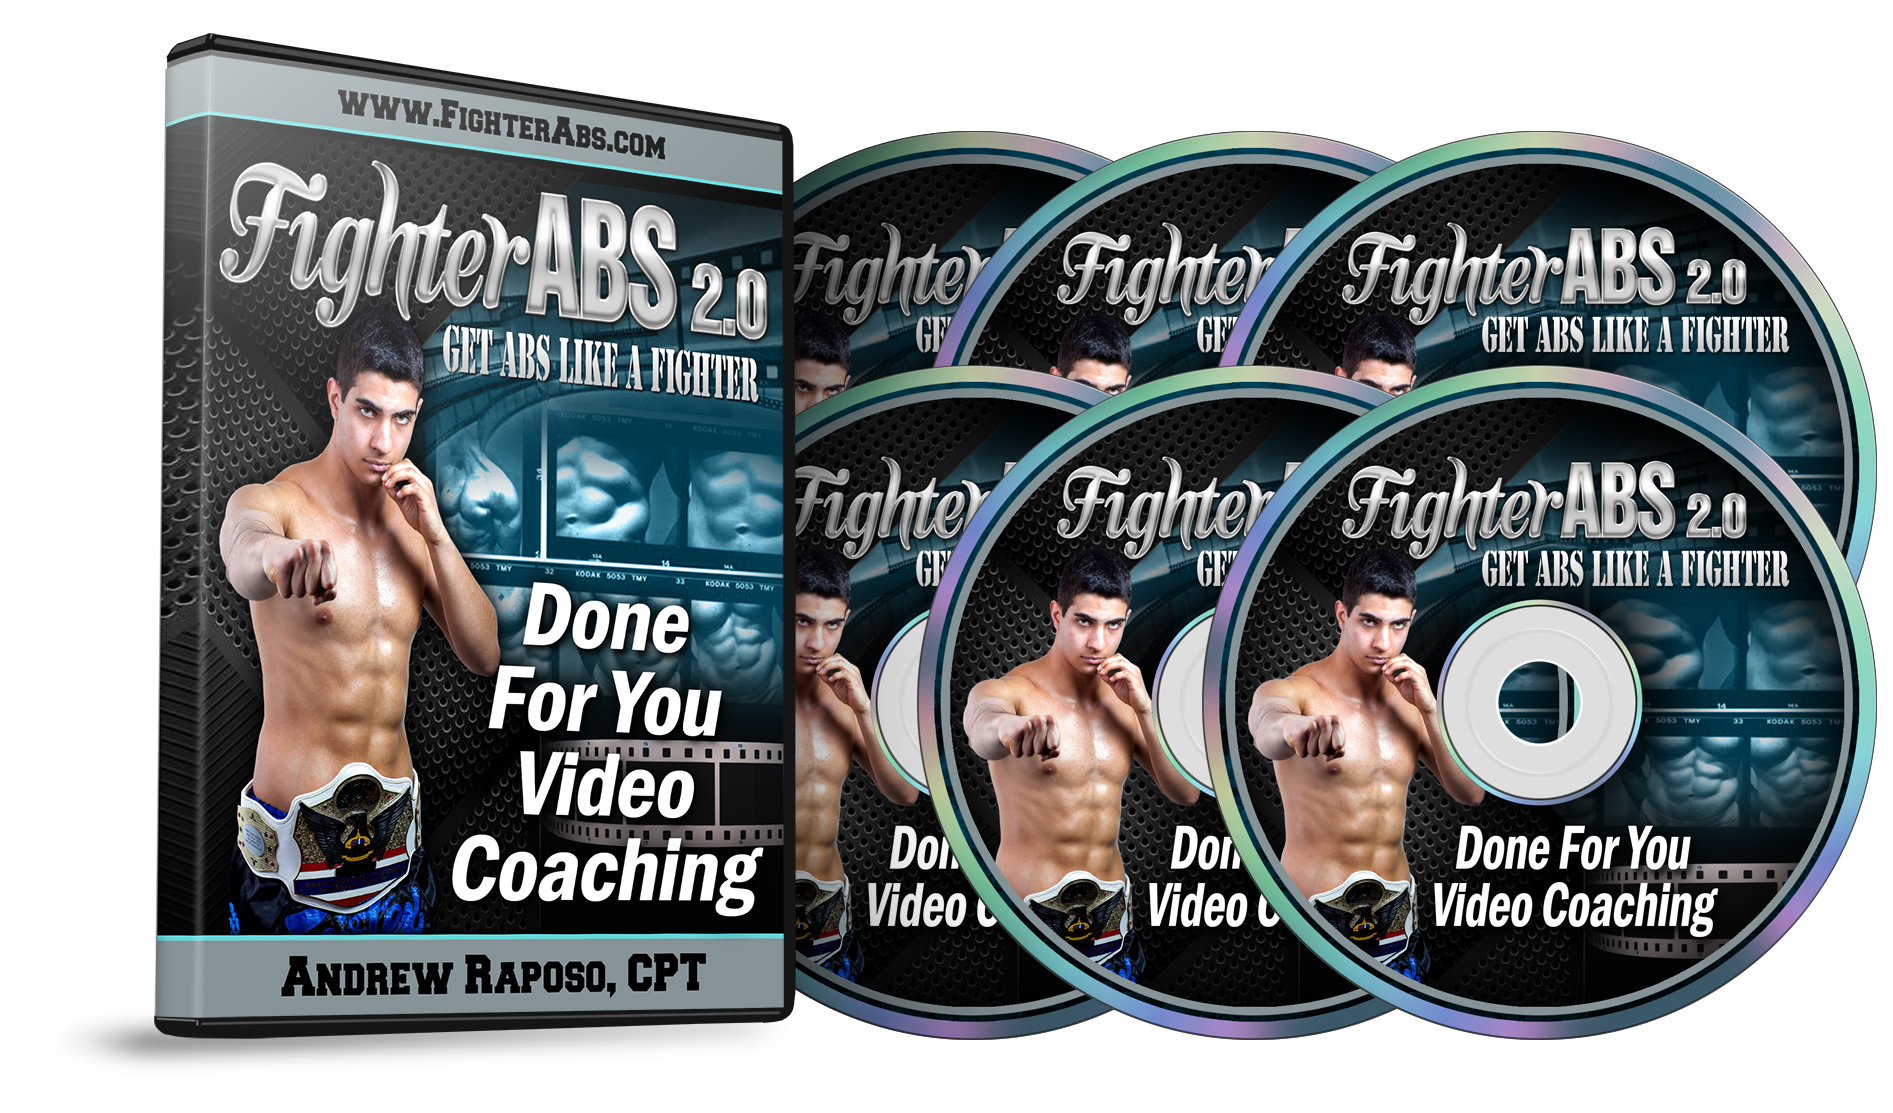 Fighter abs 2.0 review